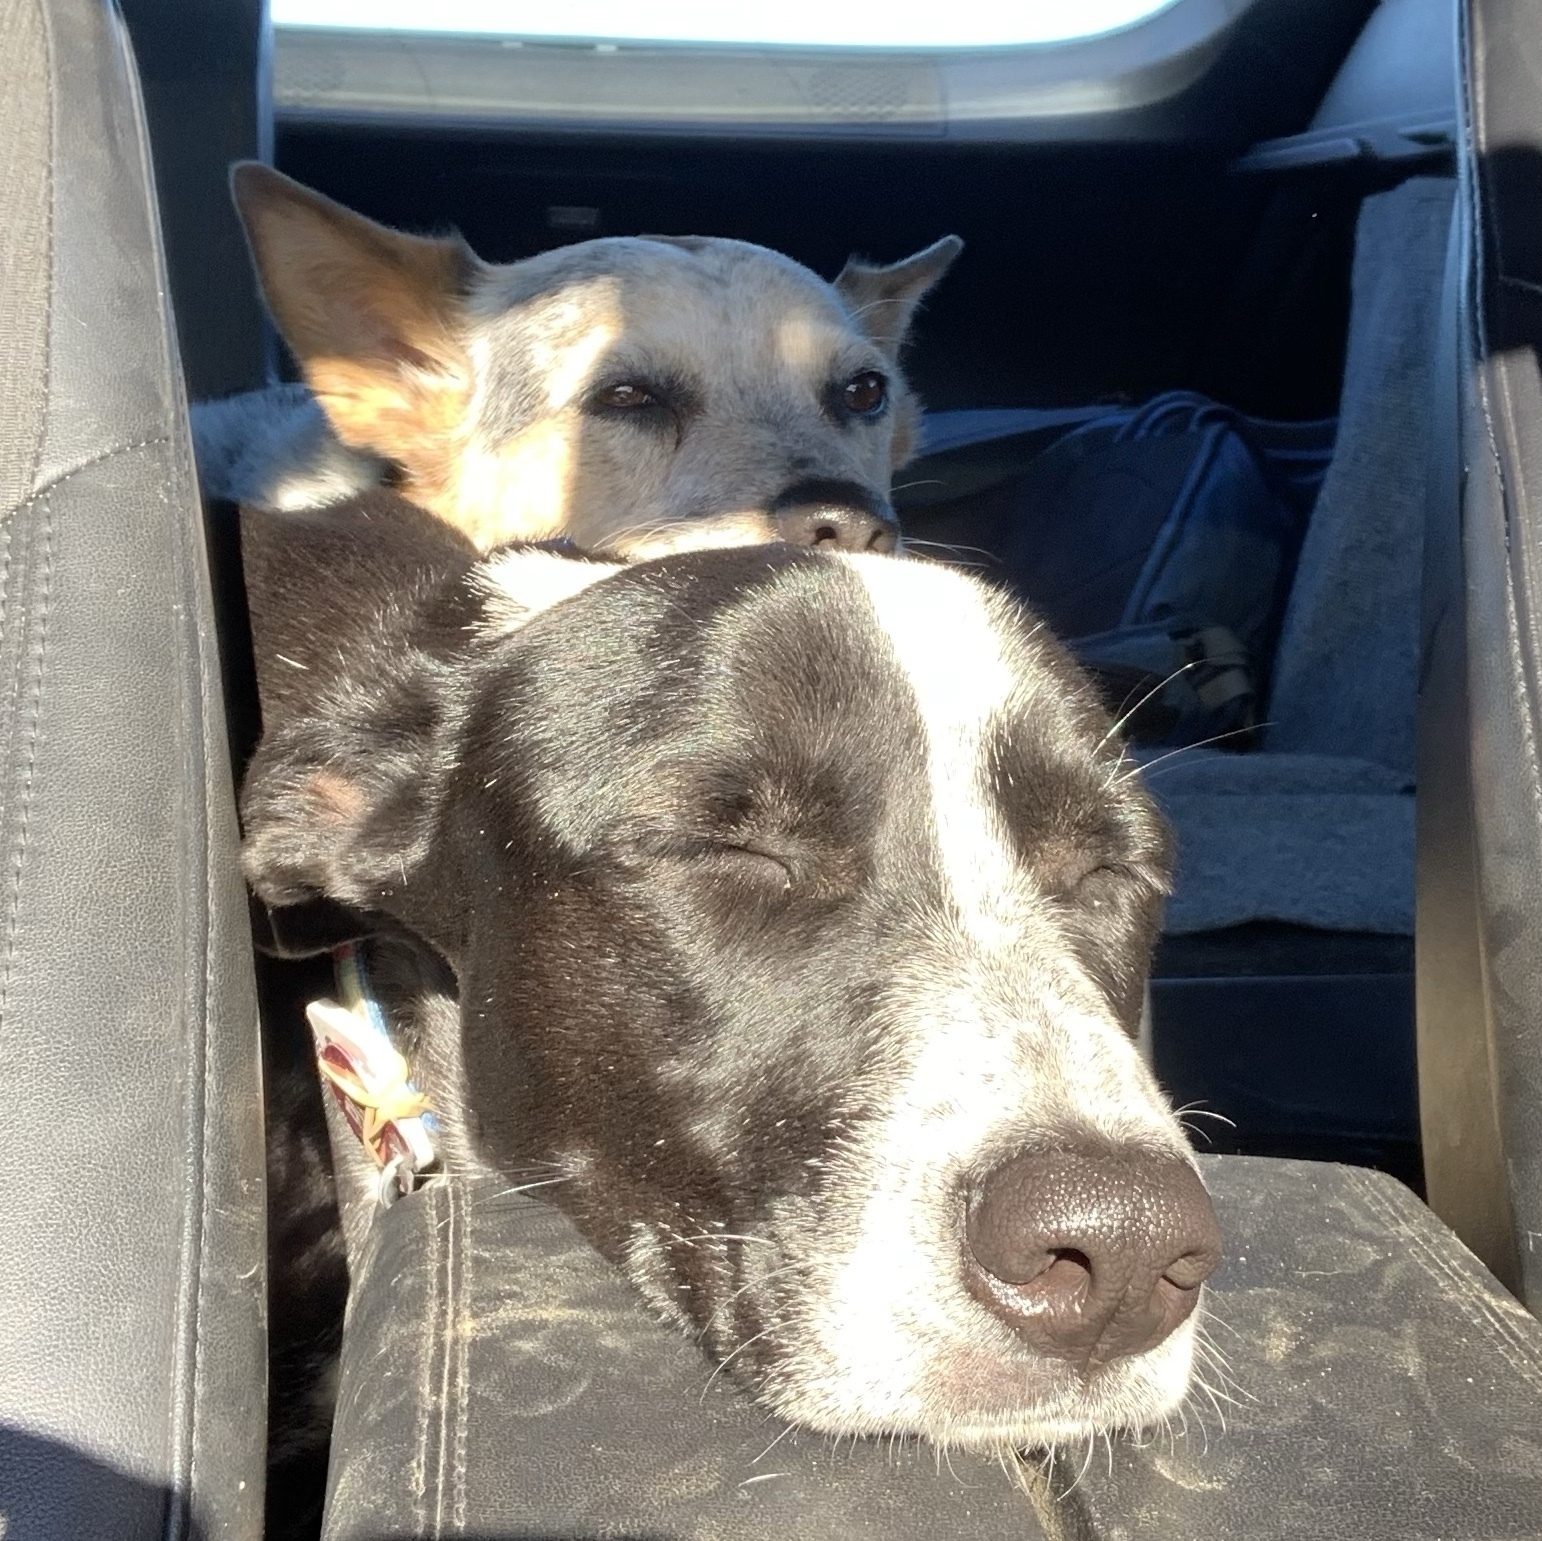 luna and tilly, two sleeping dogs